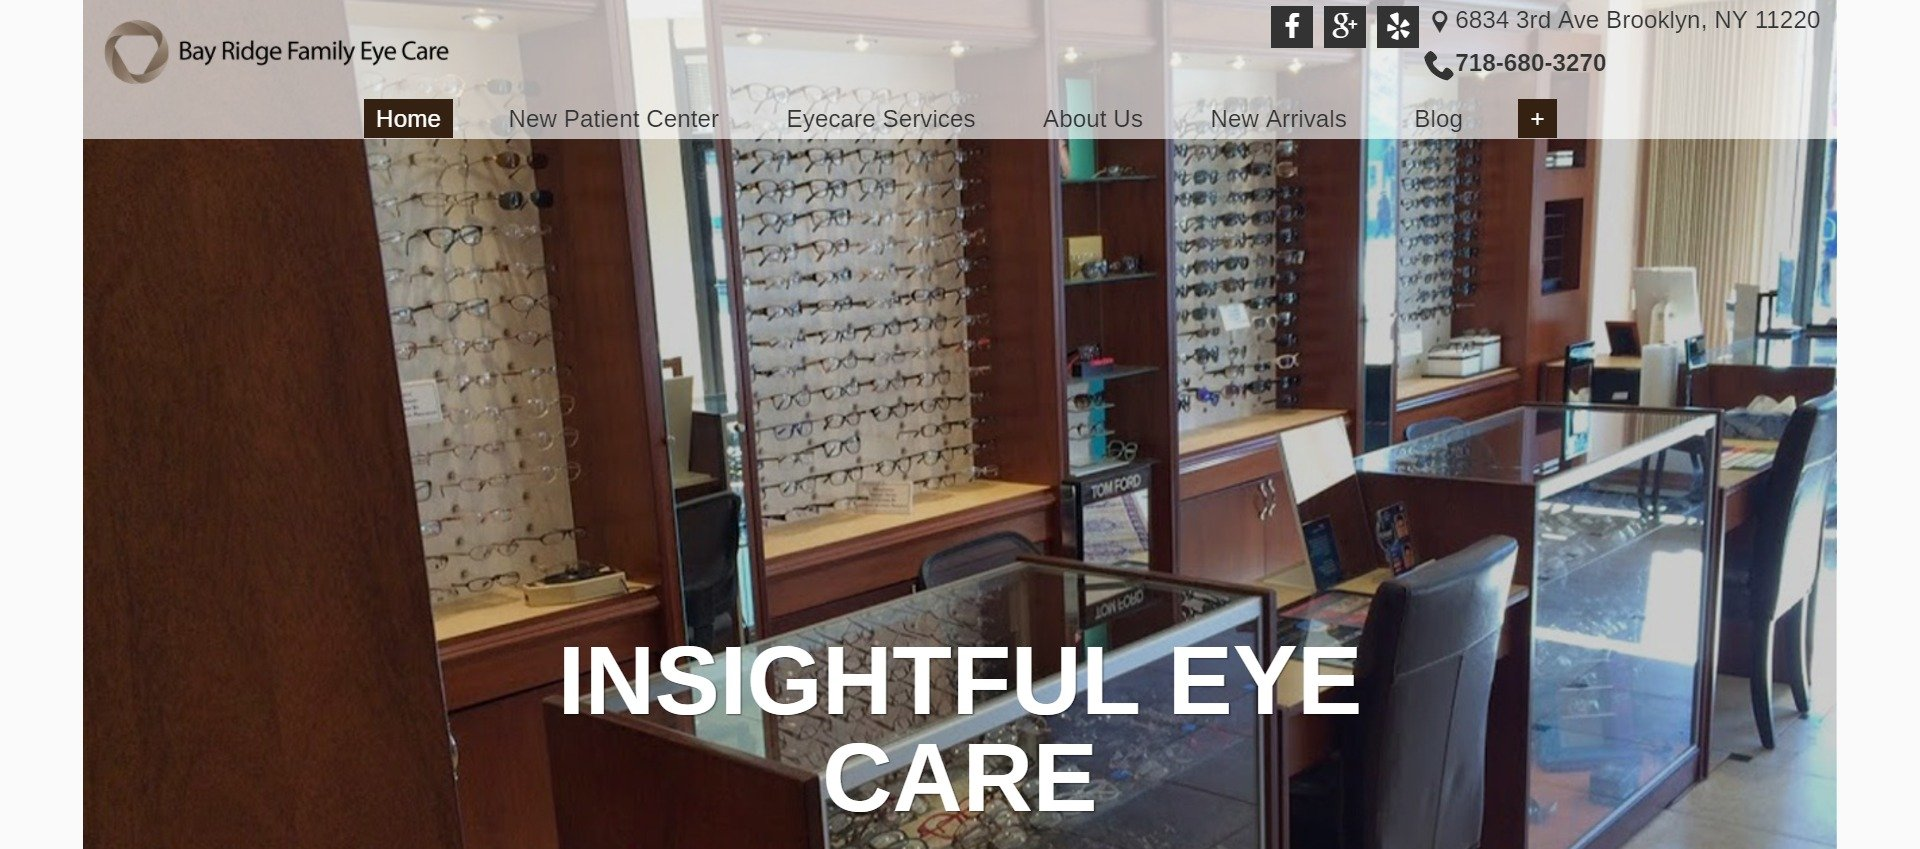 best-optometry-websites-www.bayridgefamilyeyecare.com